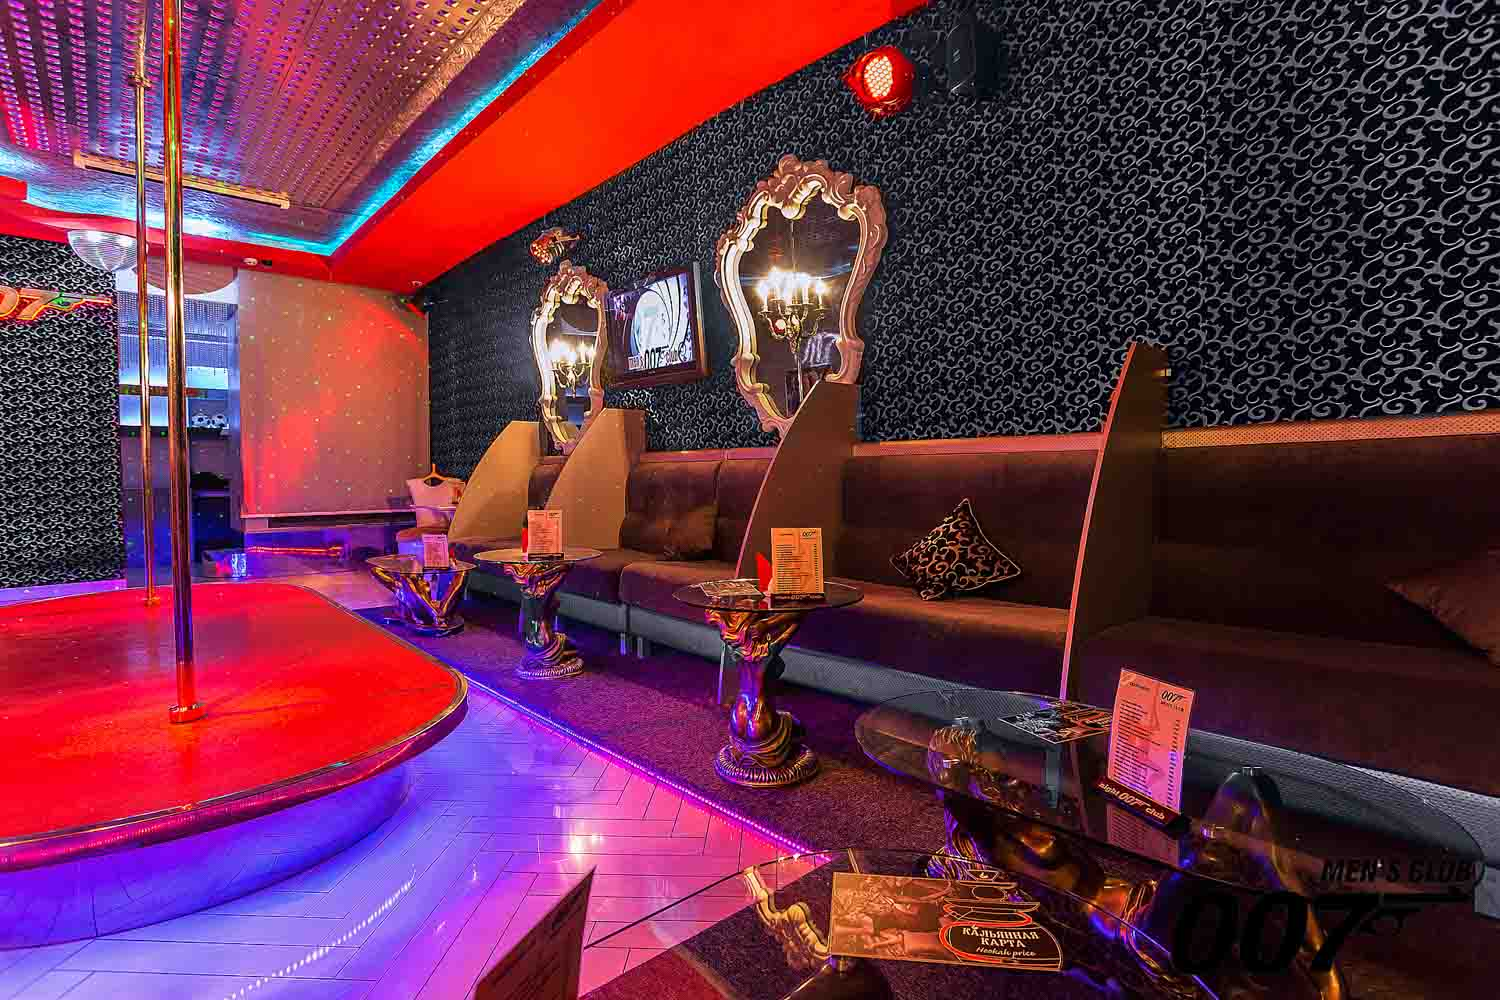 The strip club's interior is Men's Club 007